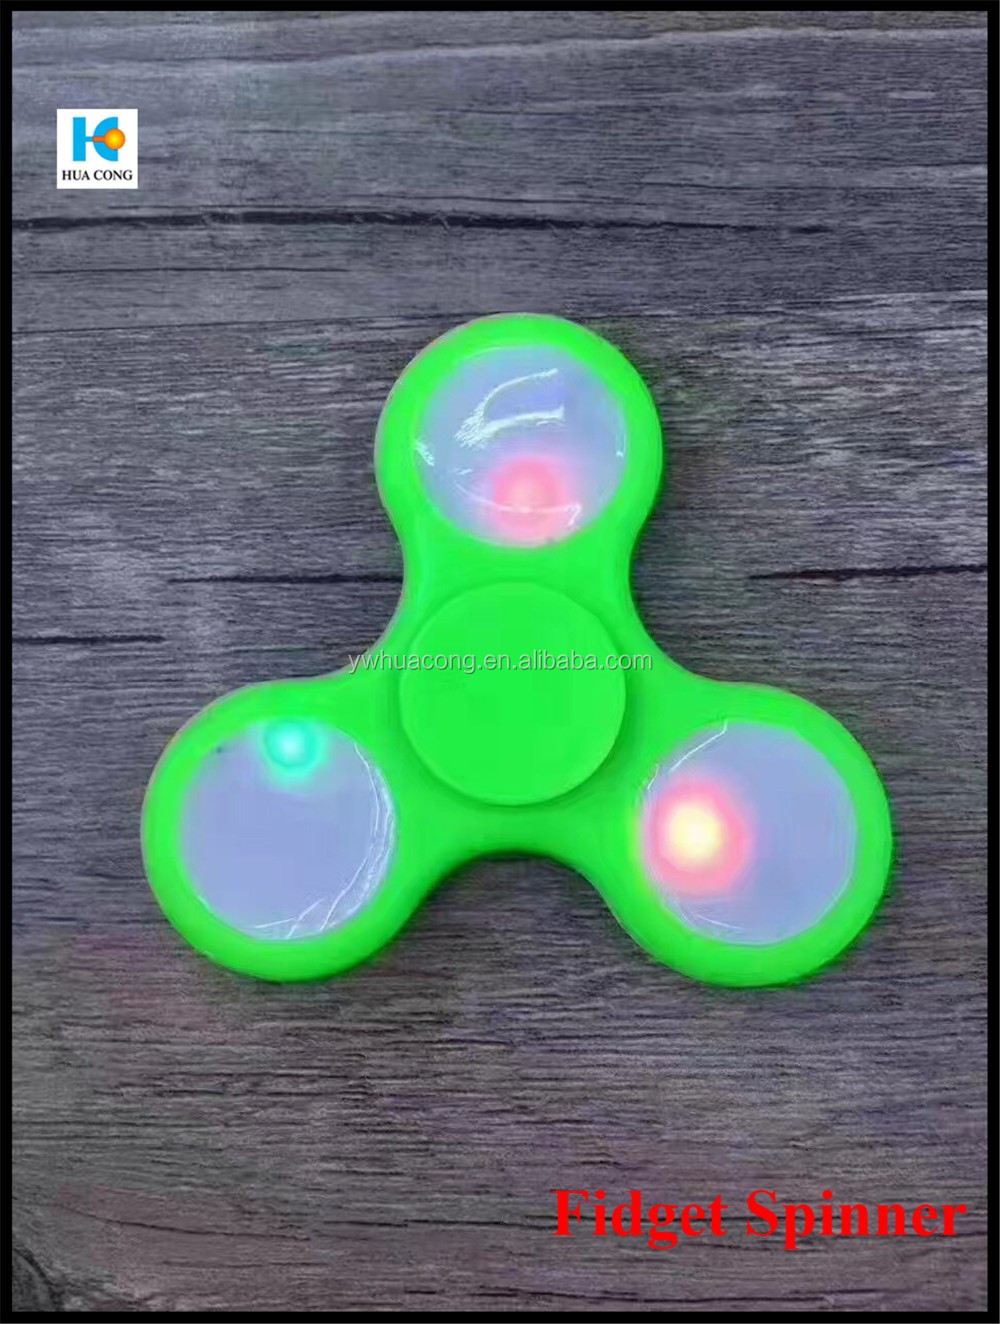 2017 hot selling various color light fidget spinner Fidget Spinner from directly factory